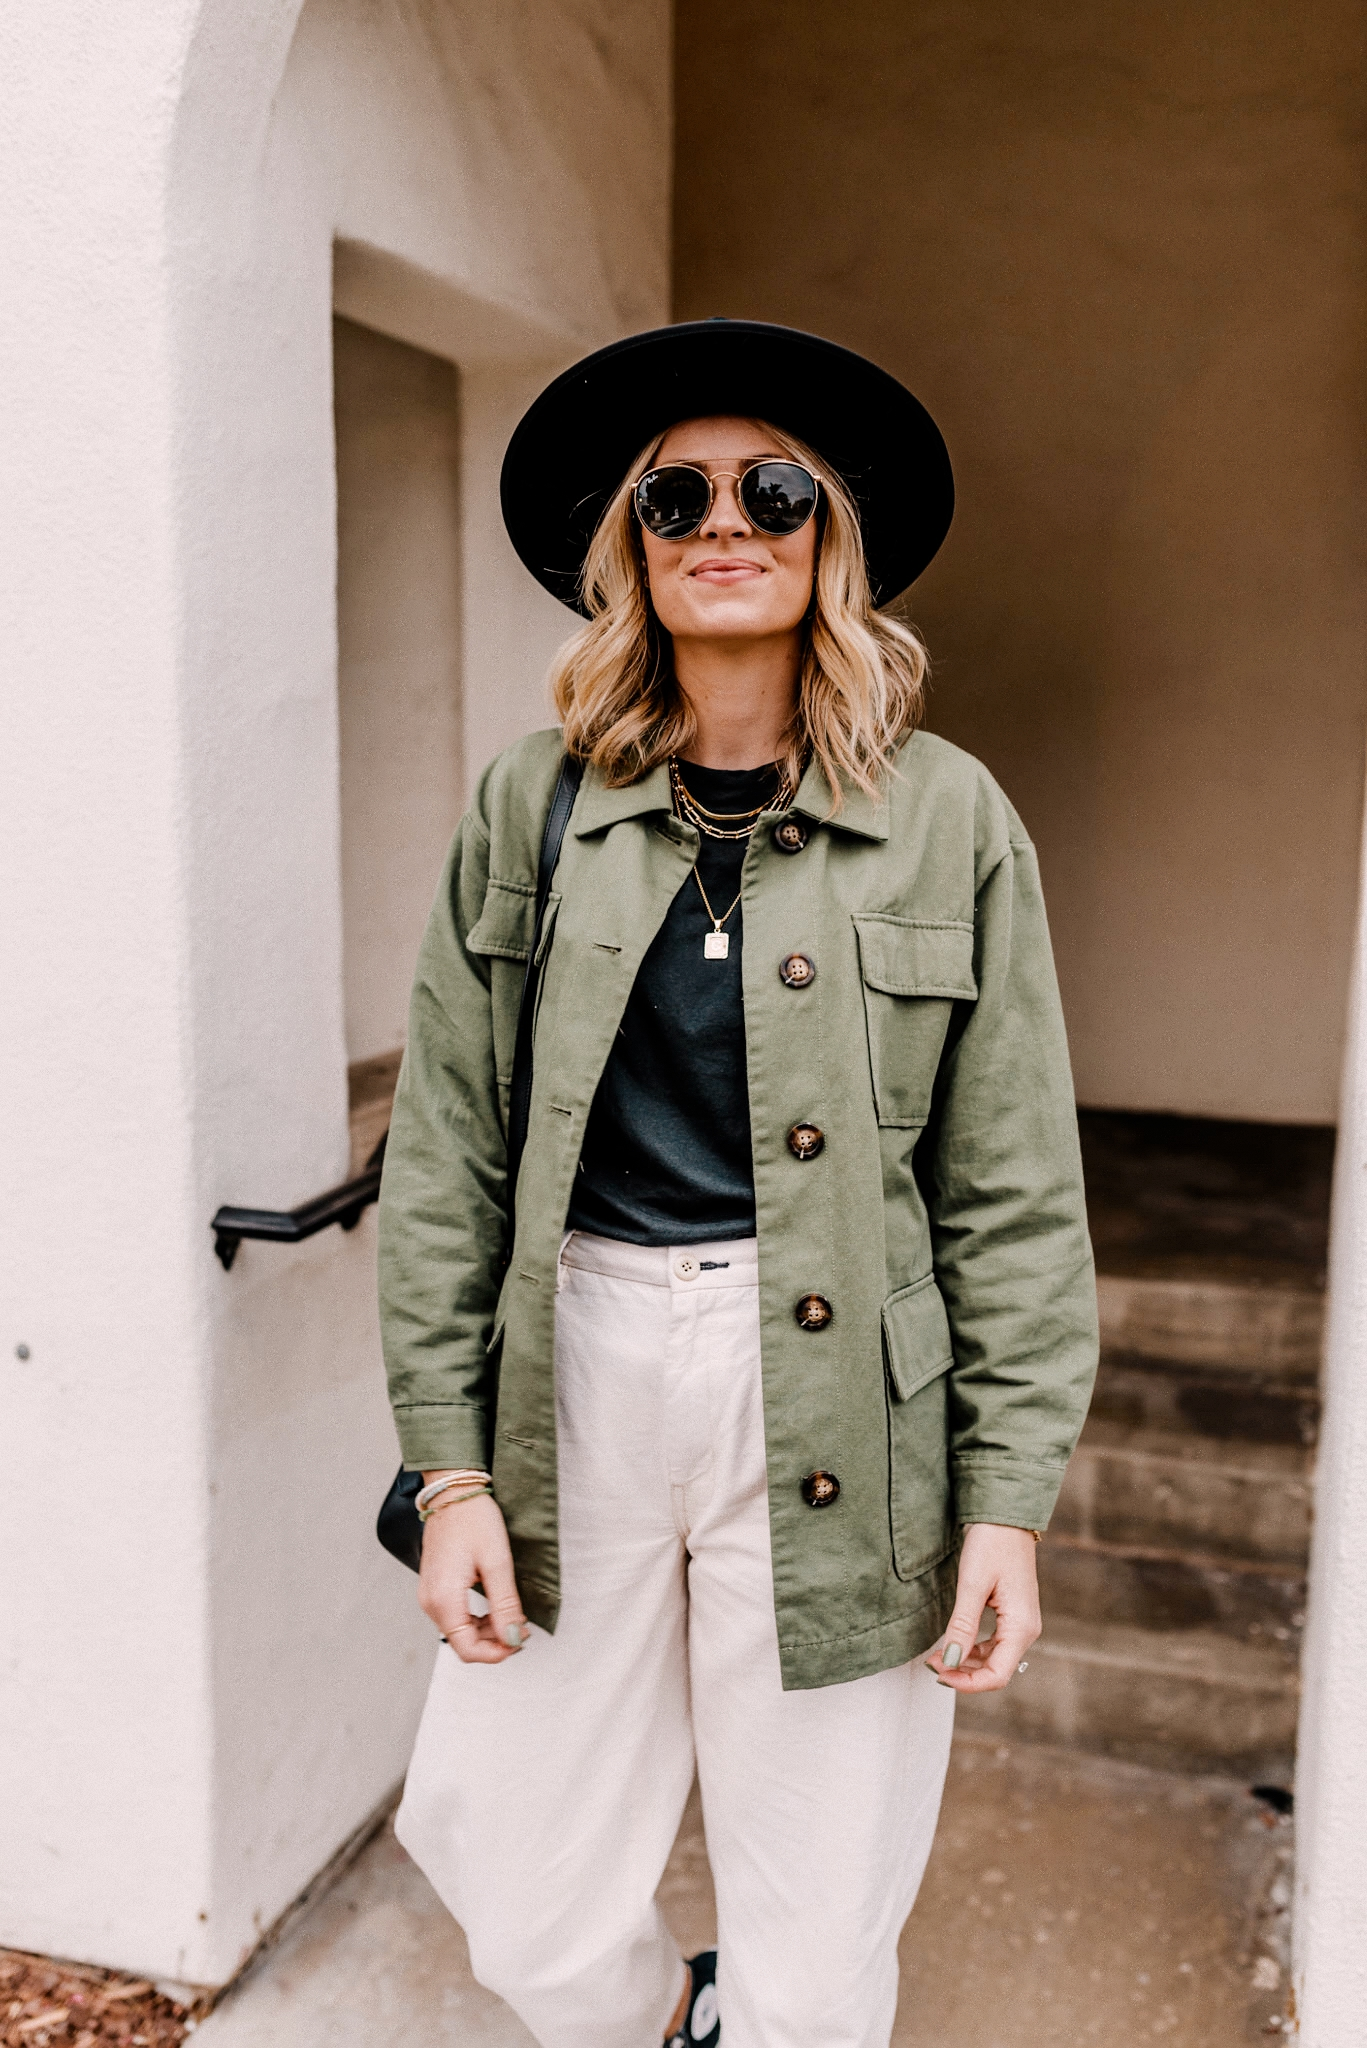 Military Jacket by popular San Diego fashion blog, Navy Grace: image of a woman wearing a military jacket, Ray-Ban sunglasses, canvas pants, black long sleeve t-shirt, black fedora hat, high top Converse sneakers, and Prada purse.